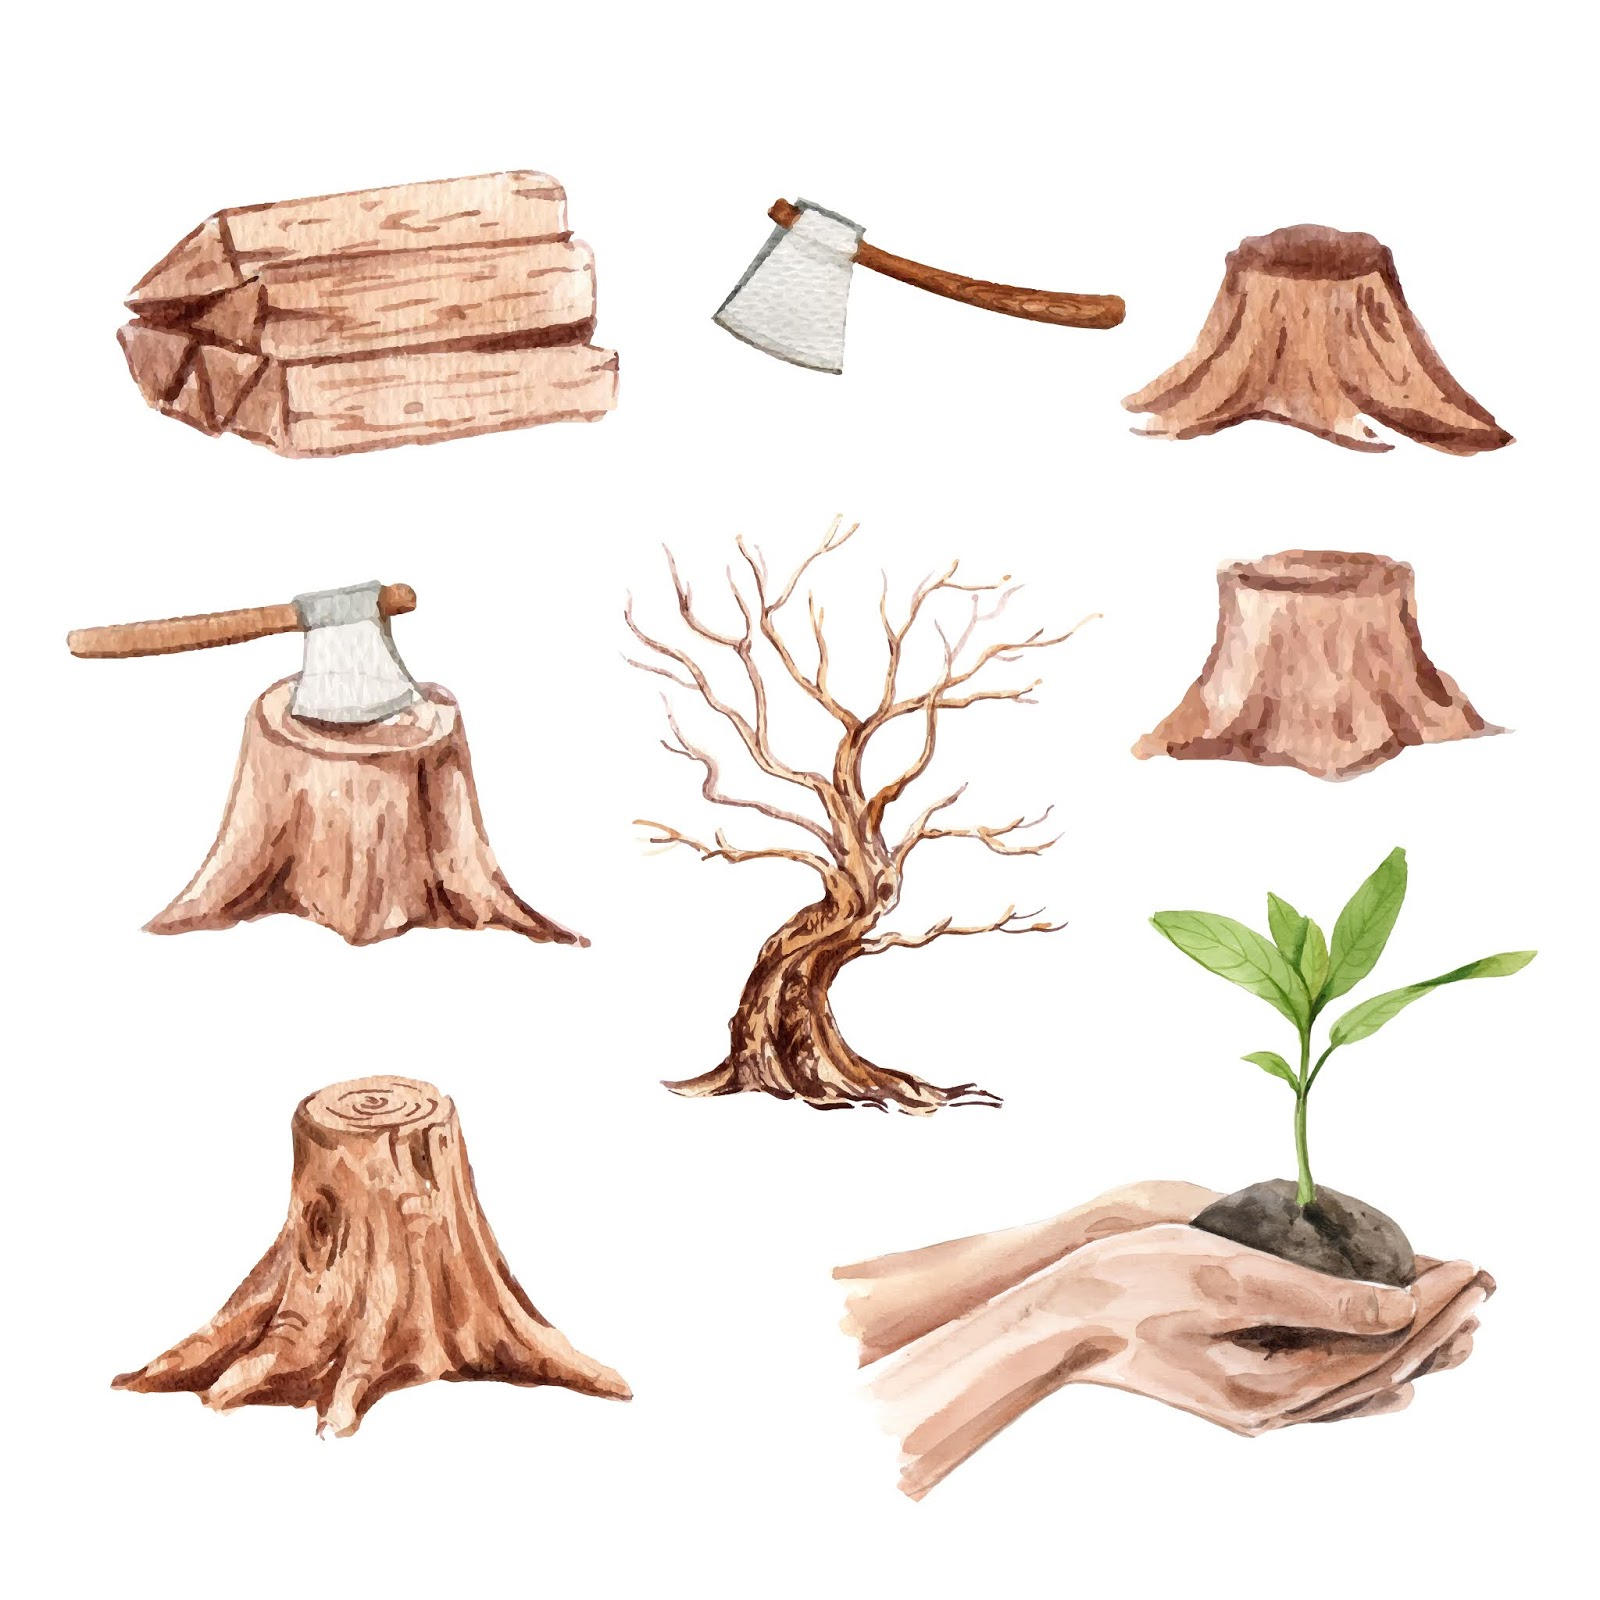 Set Watercolor Deforestation Hand Drawn Free Download Vector CDR, AI, EPS and PNG Formats